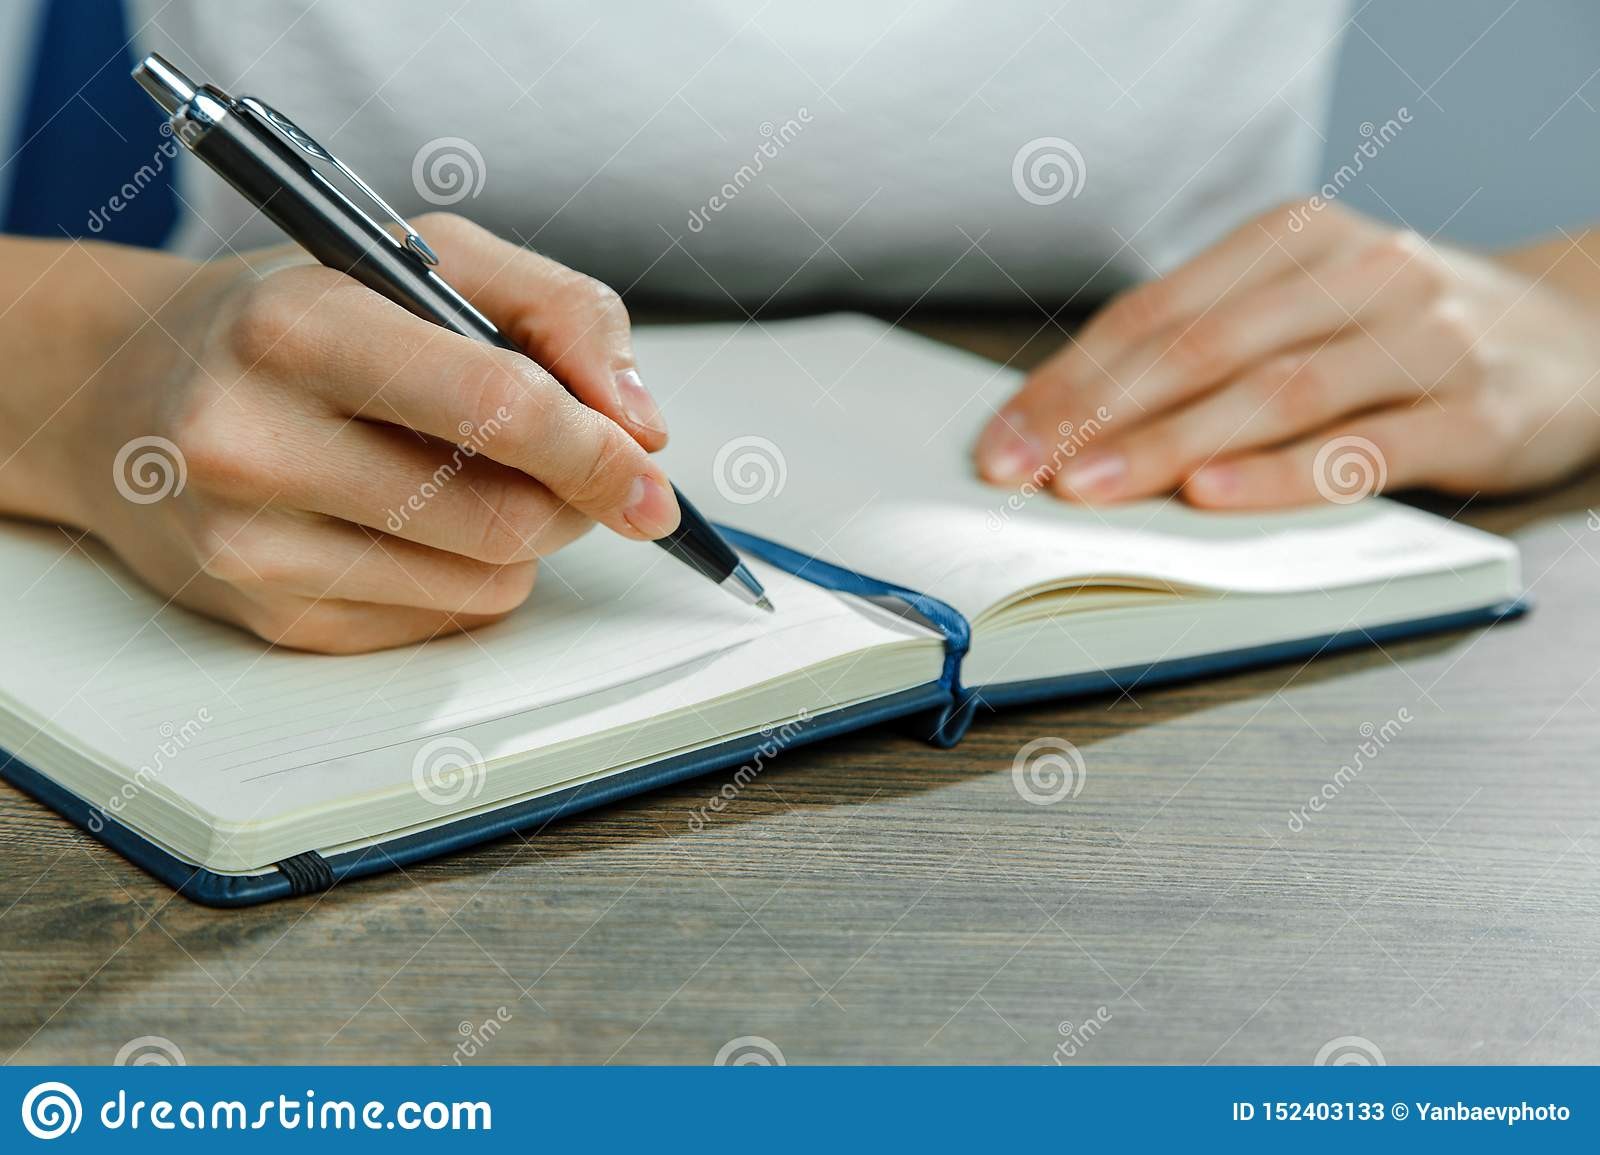 Female hands are writing in a notebook